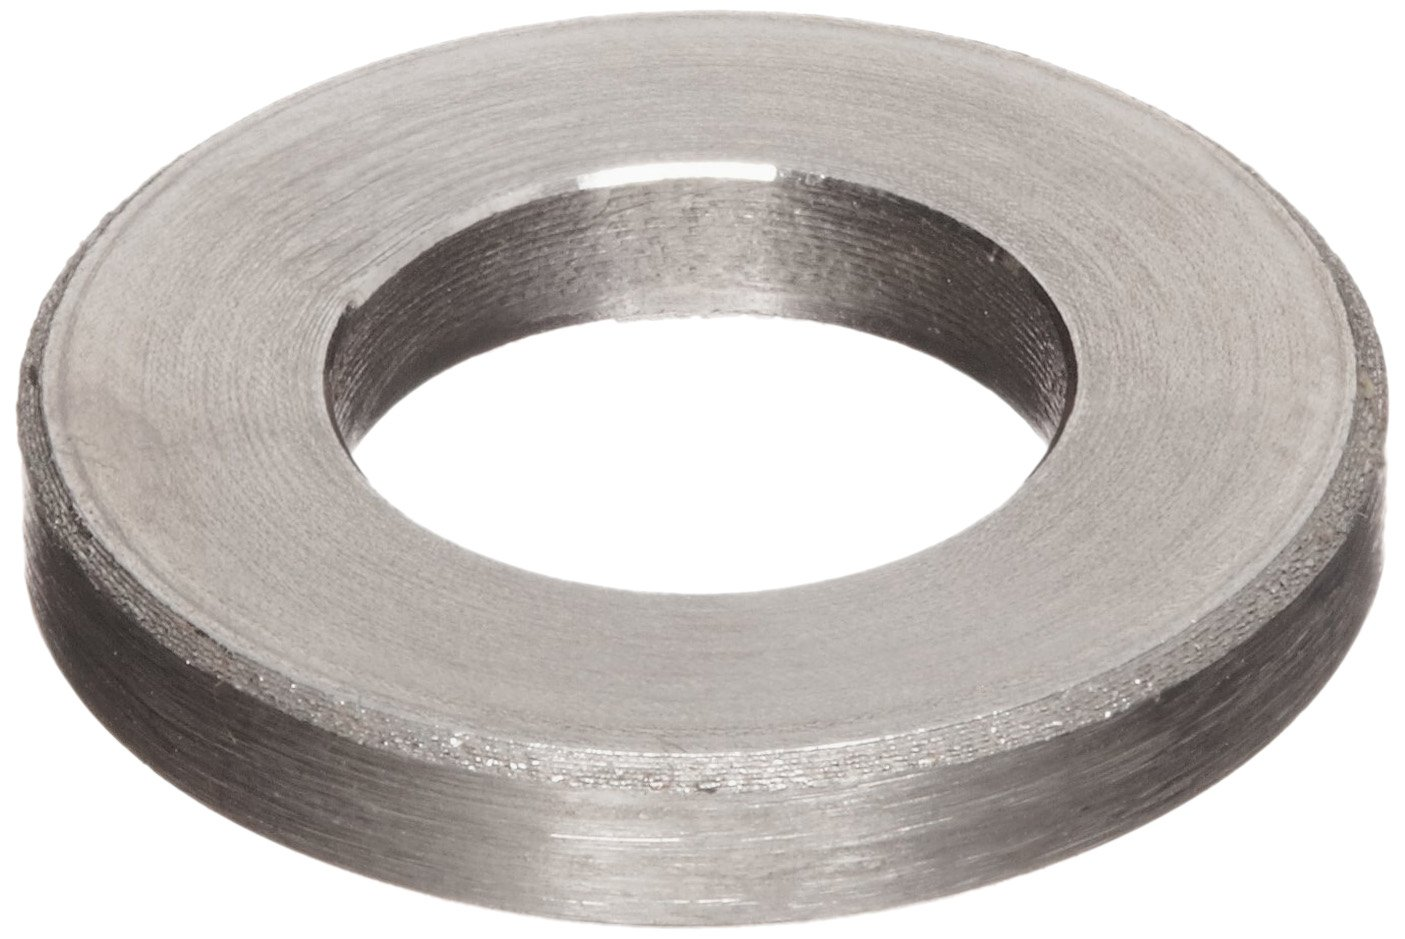 Pack of 10 Made in US 0.312 OD 0.144 ID 0.144 ID 0.312 OD 0.062 Nominal Thickness Accurate Manufacturing Z0702SS 18-8 Stainless Steel Flat Washer 0.062 Nominal Thickness #10 Hole Size